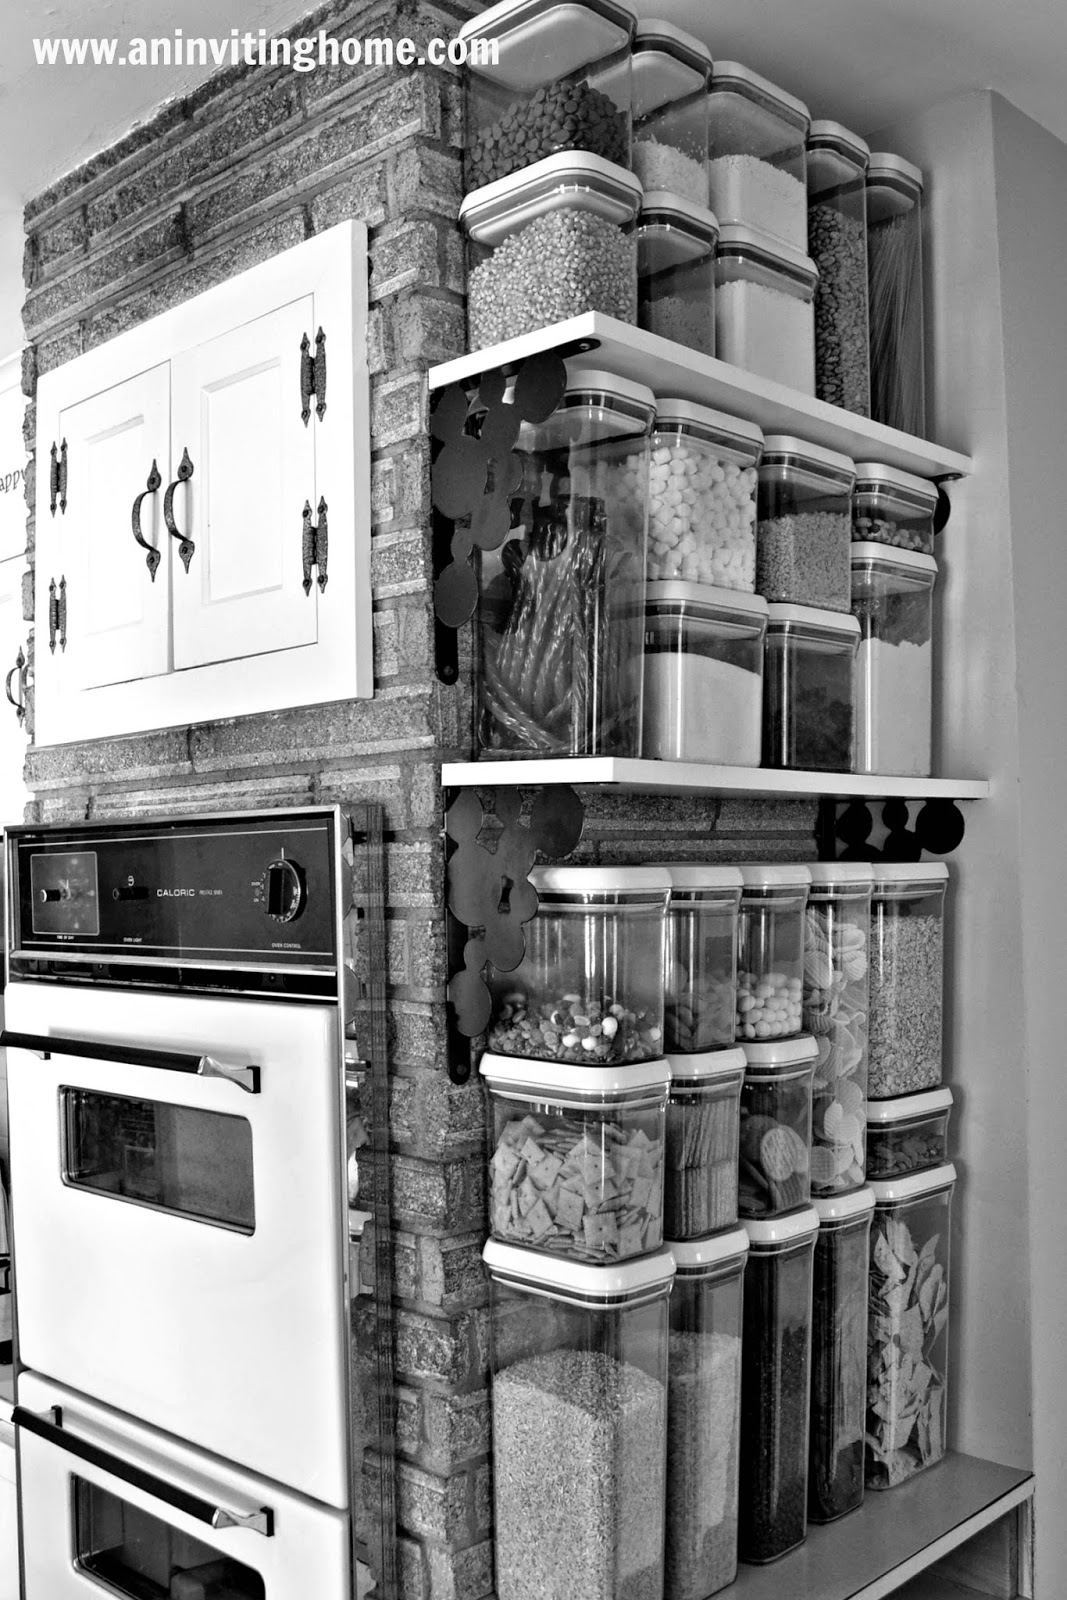 food storage in the kitchen